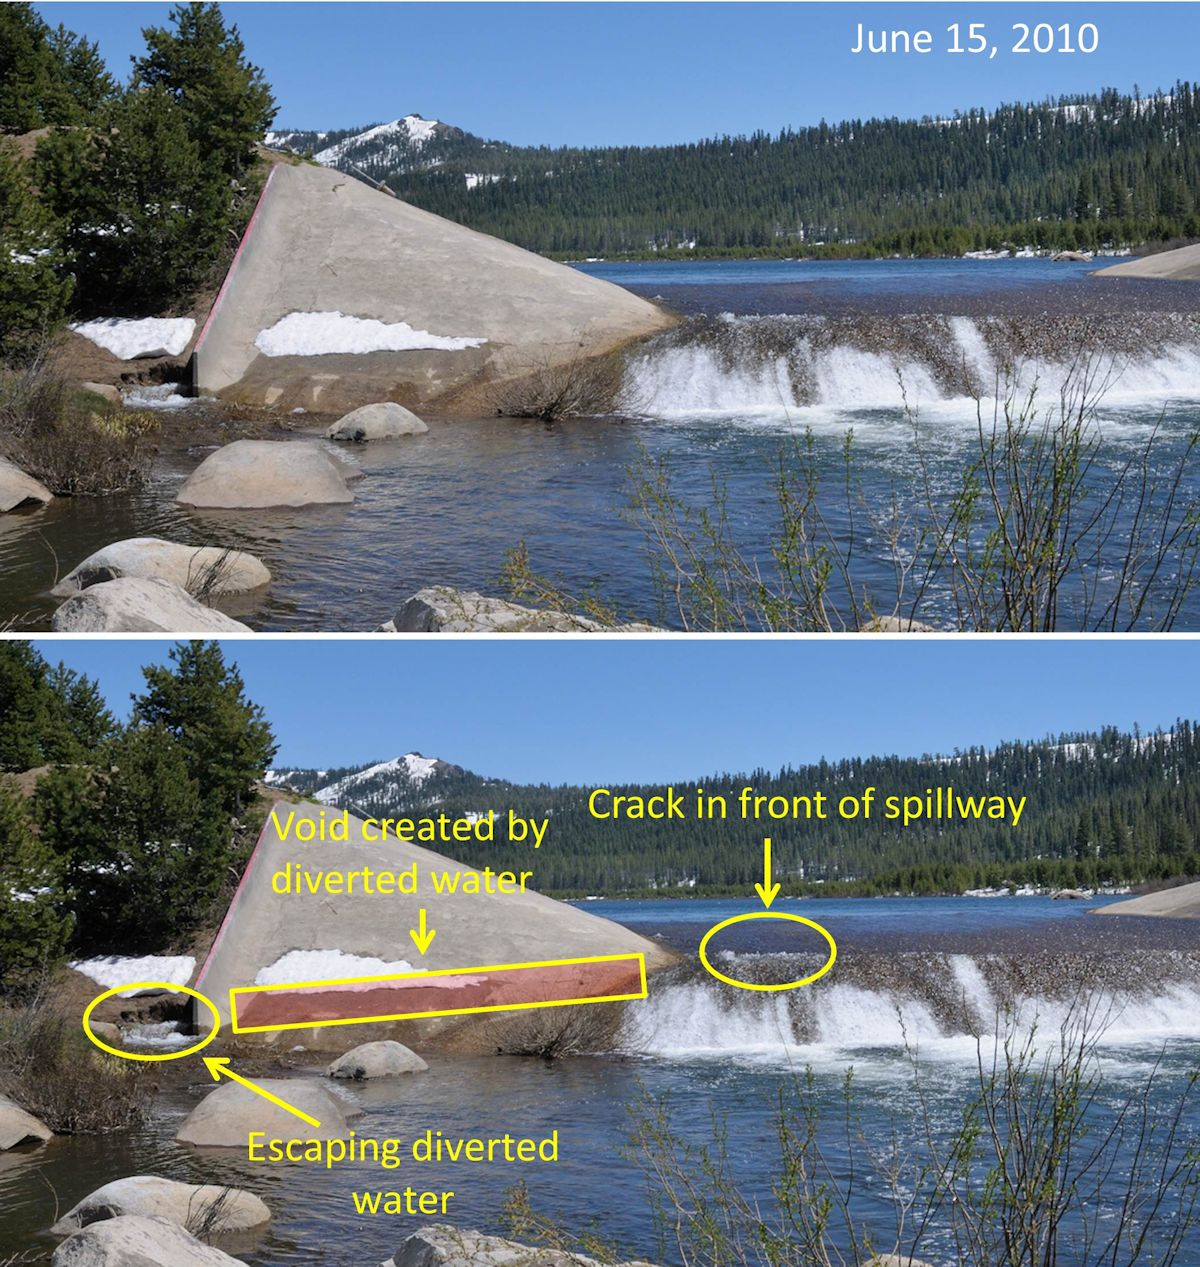 Figure 1. Van Norden spillway on June 15, 2010